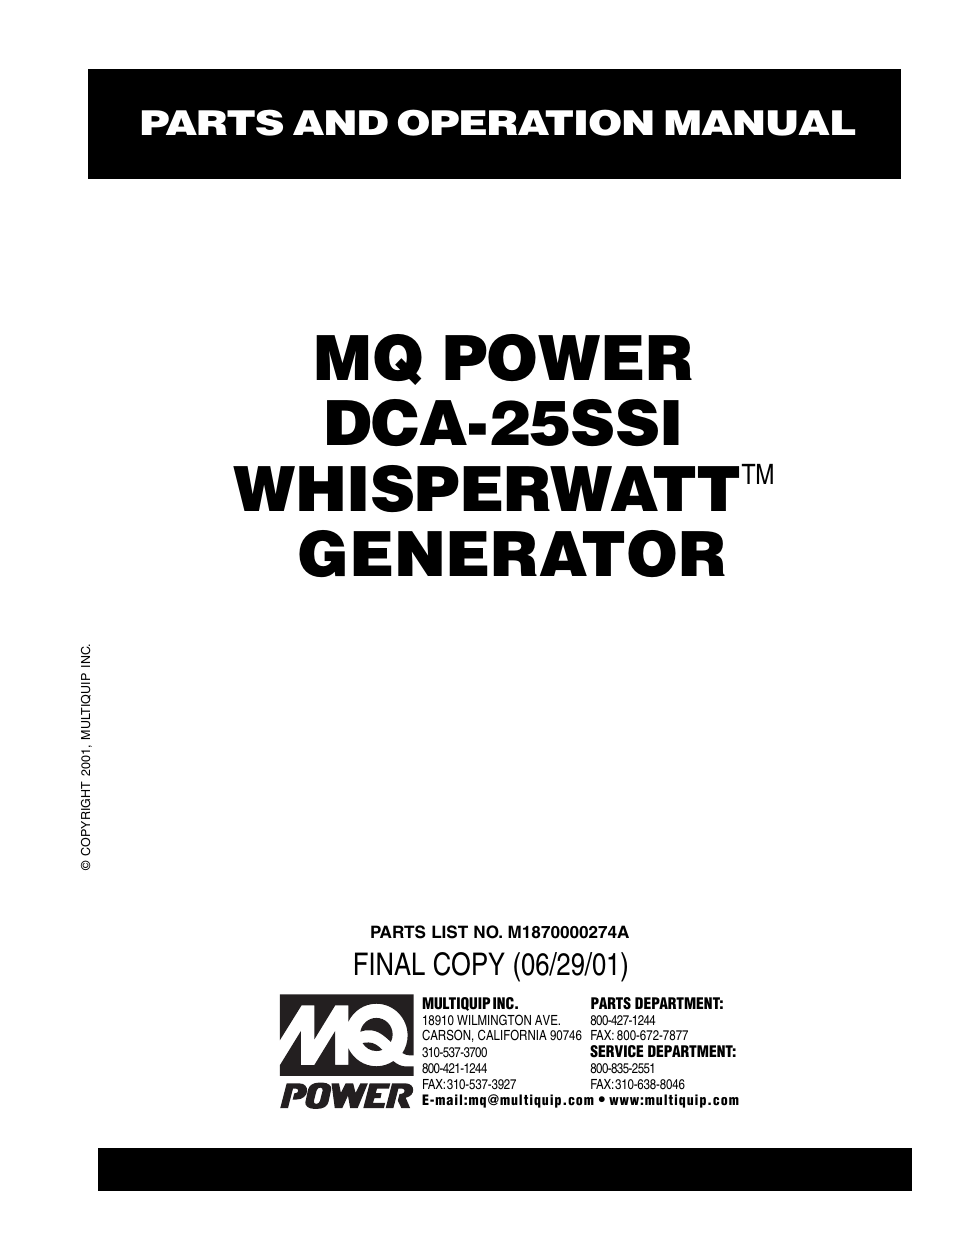 multiquip mq power whisperwatt generator dca 25ssi page1 mq power parts dca 25ssiu2 mq power generator dca 25ssiu2 mq power  at readyjetset.co